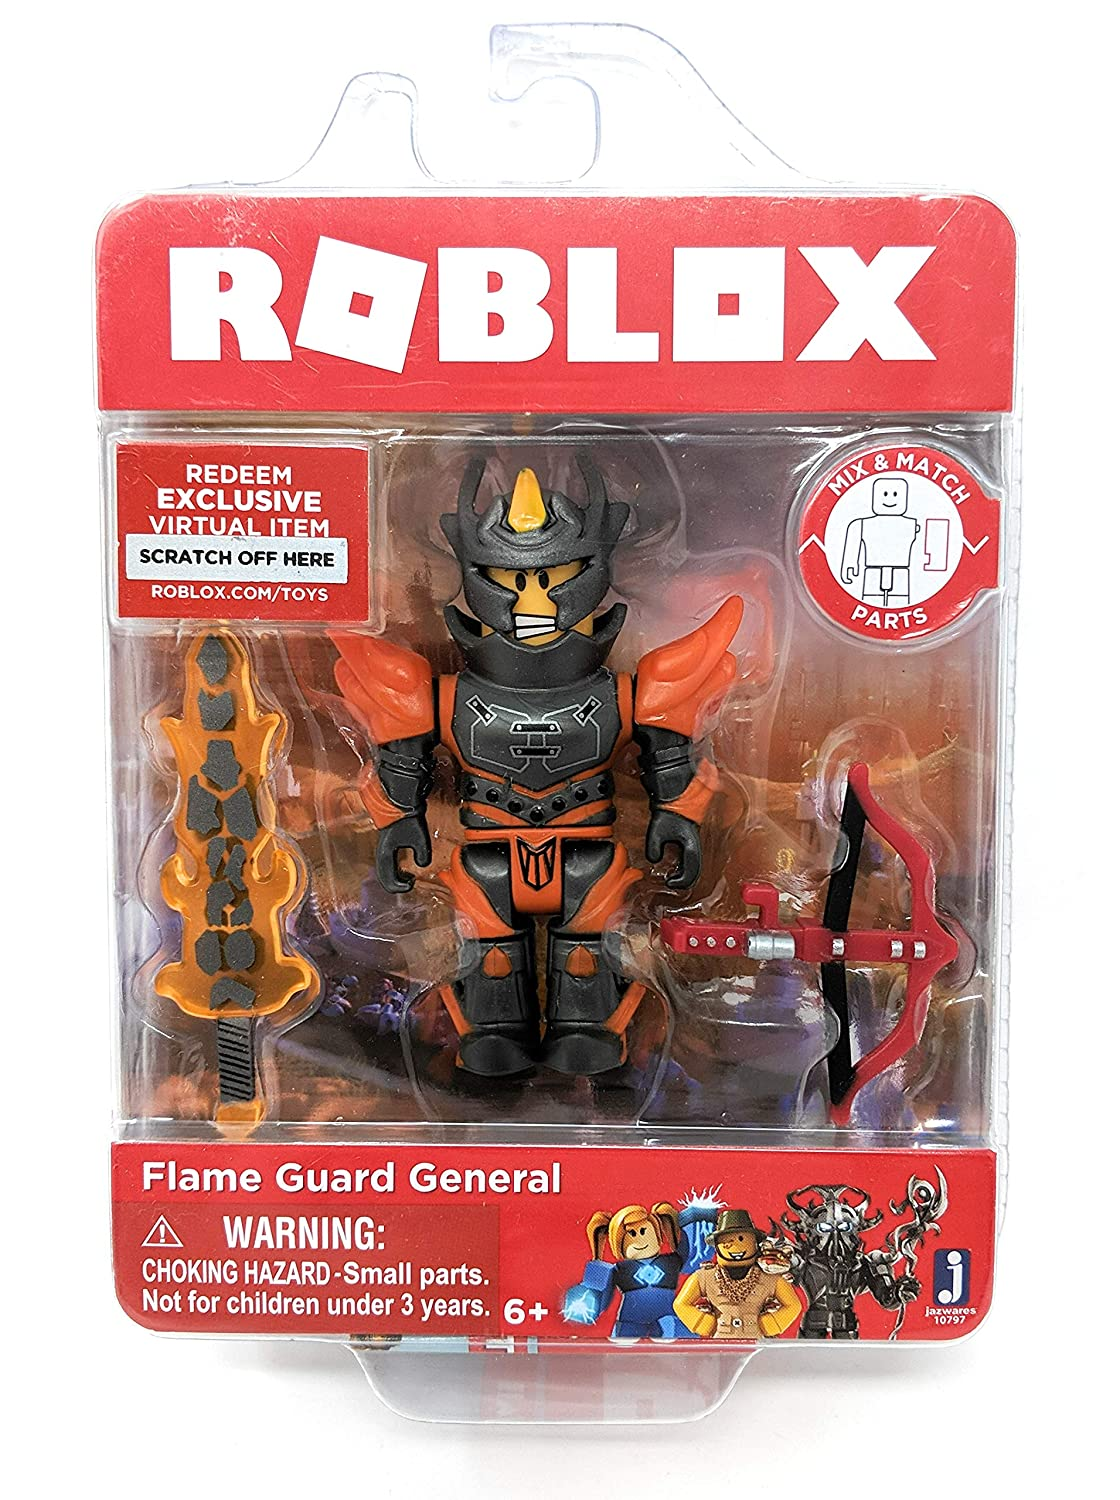 Amazoncom Roblox Flame Guard General Single Figure Core Pack With